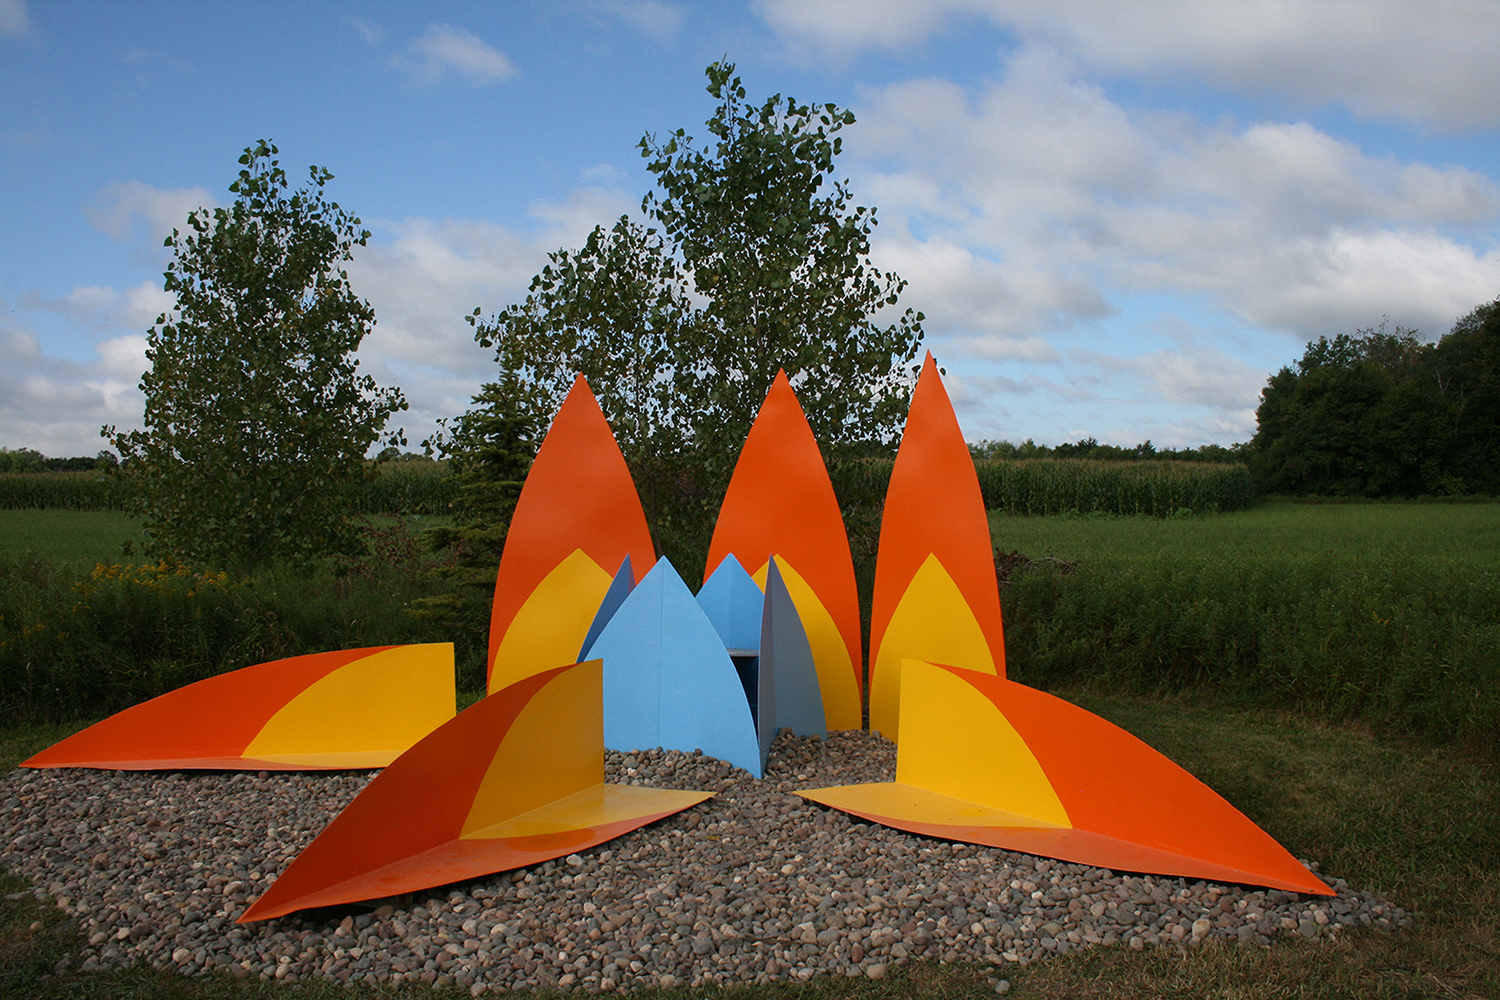 """17768 Tigerlily  Painted steel sculpture 7'11"""" x 21'8"""" x 19'2"""" Franconia Sculpture Park, Shafer, MN 2013"""